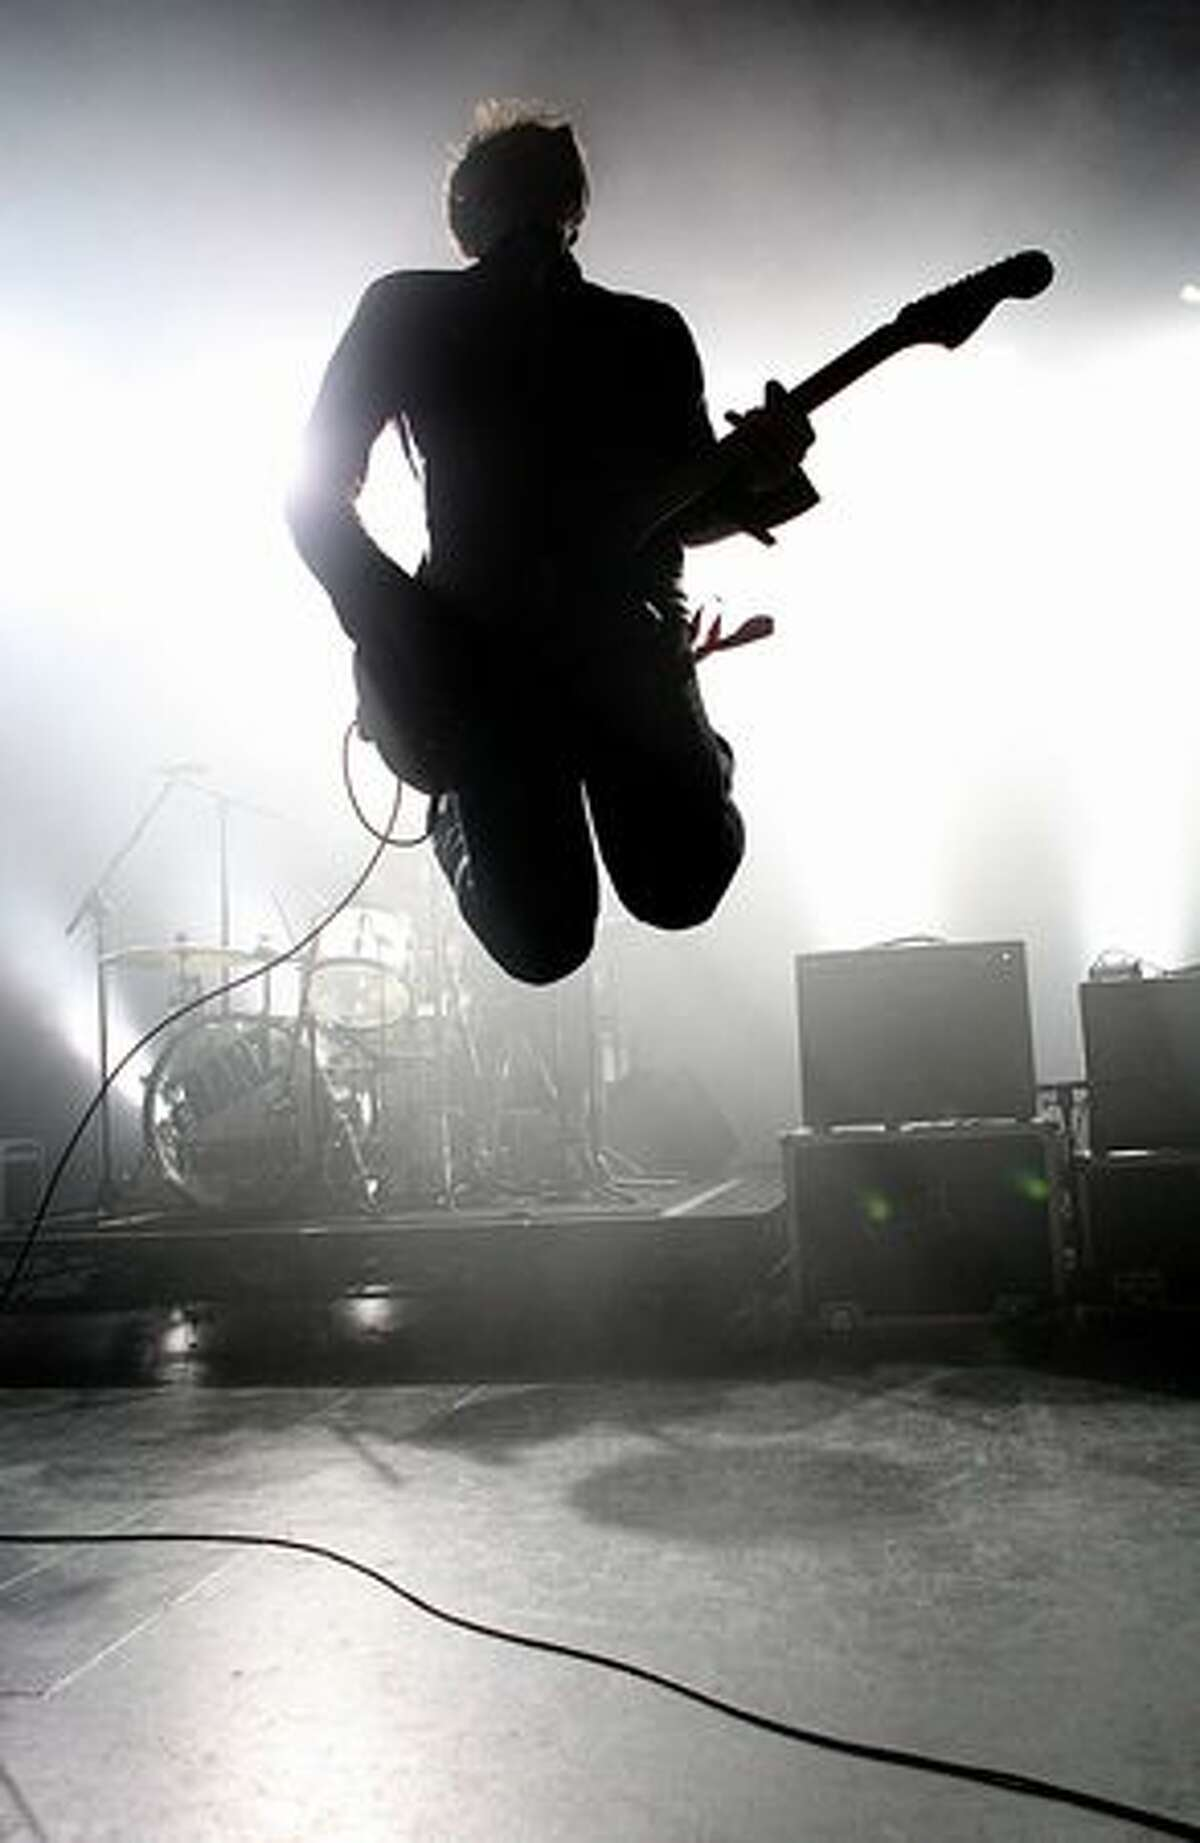 Alex Kapranos of the band Franz Ferdinand performs on stage at the Enmore Theatre on Jan. 6 in Sydney, Australia.